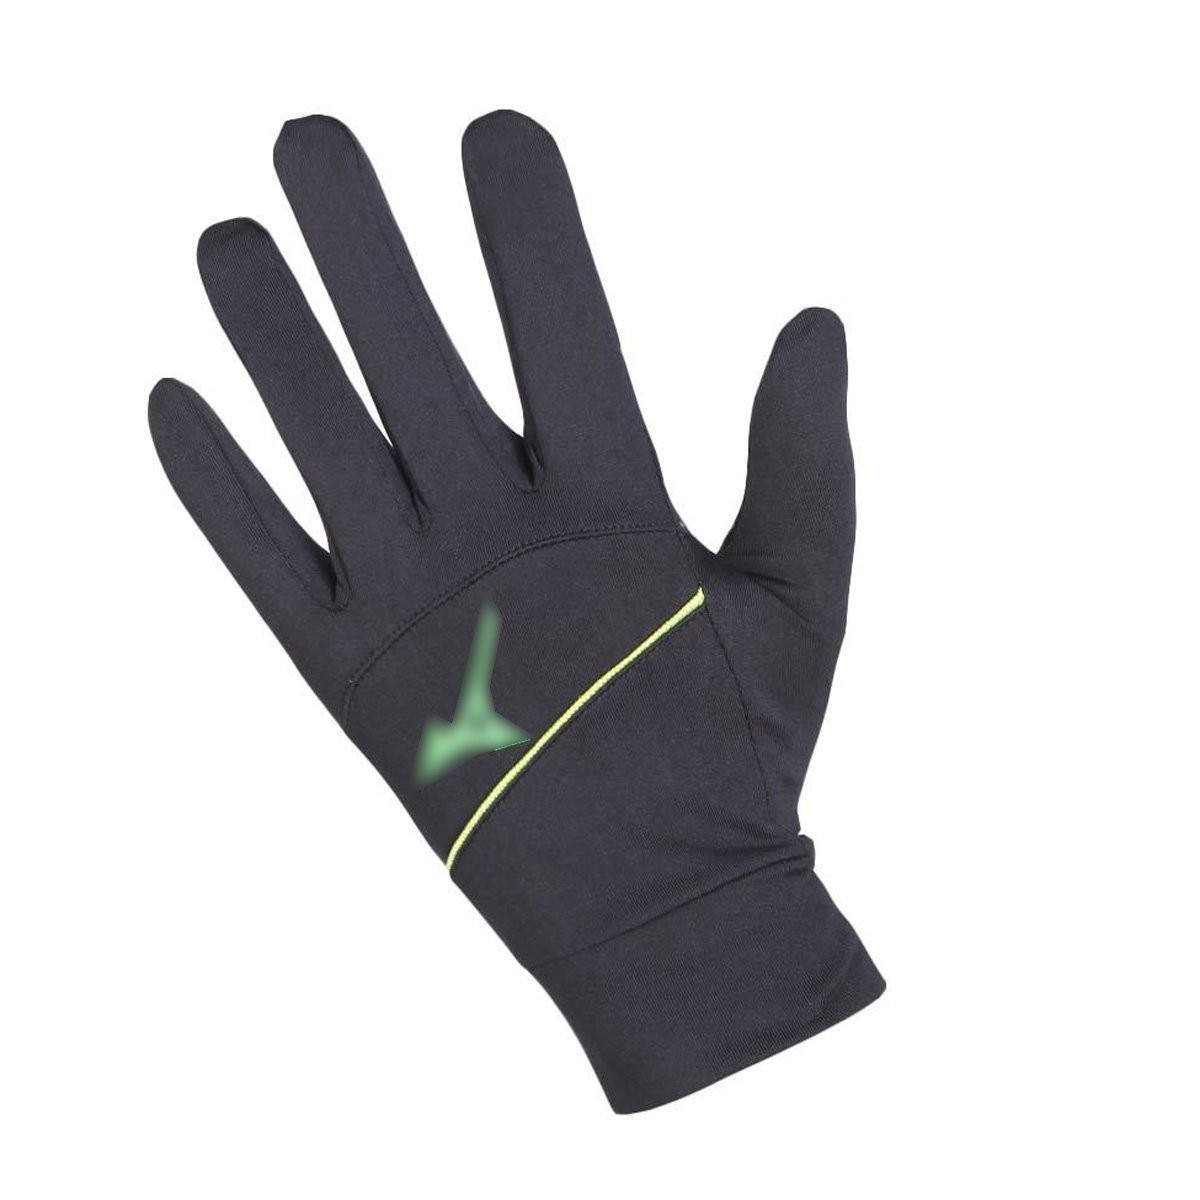 Man Woman Touch Screen Ride Sunscreen Bike All Fingers Fitness Anti Slip Silicone Driving Glove